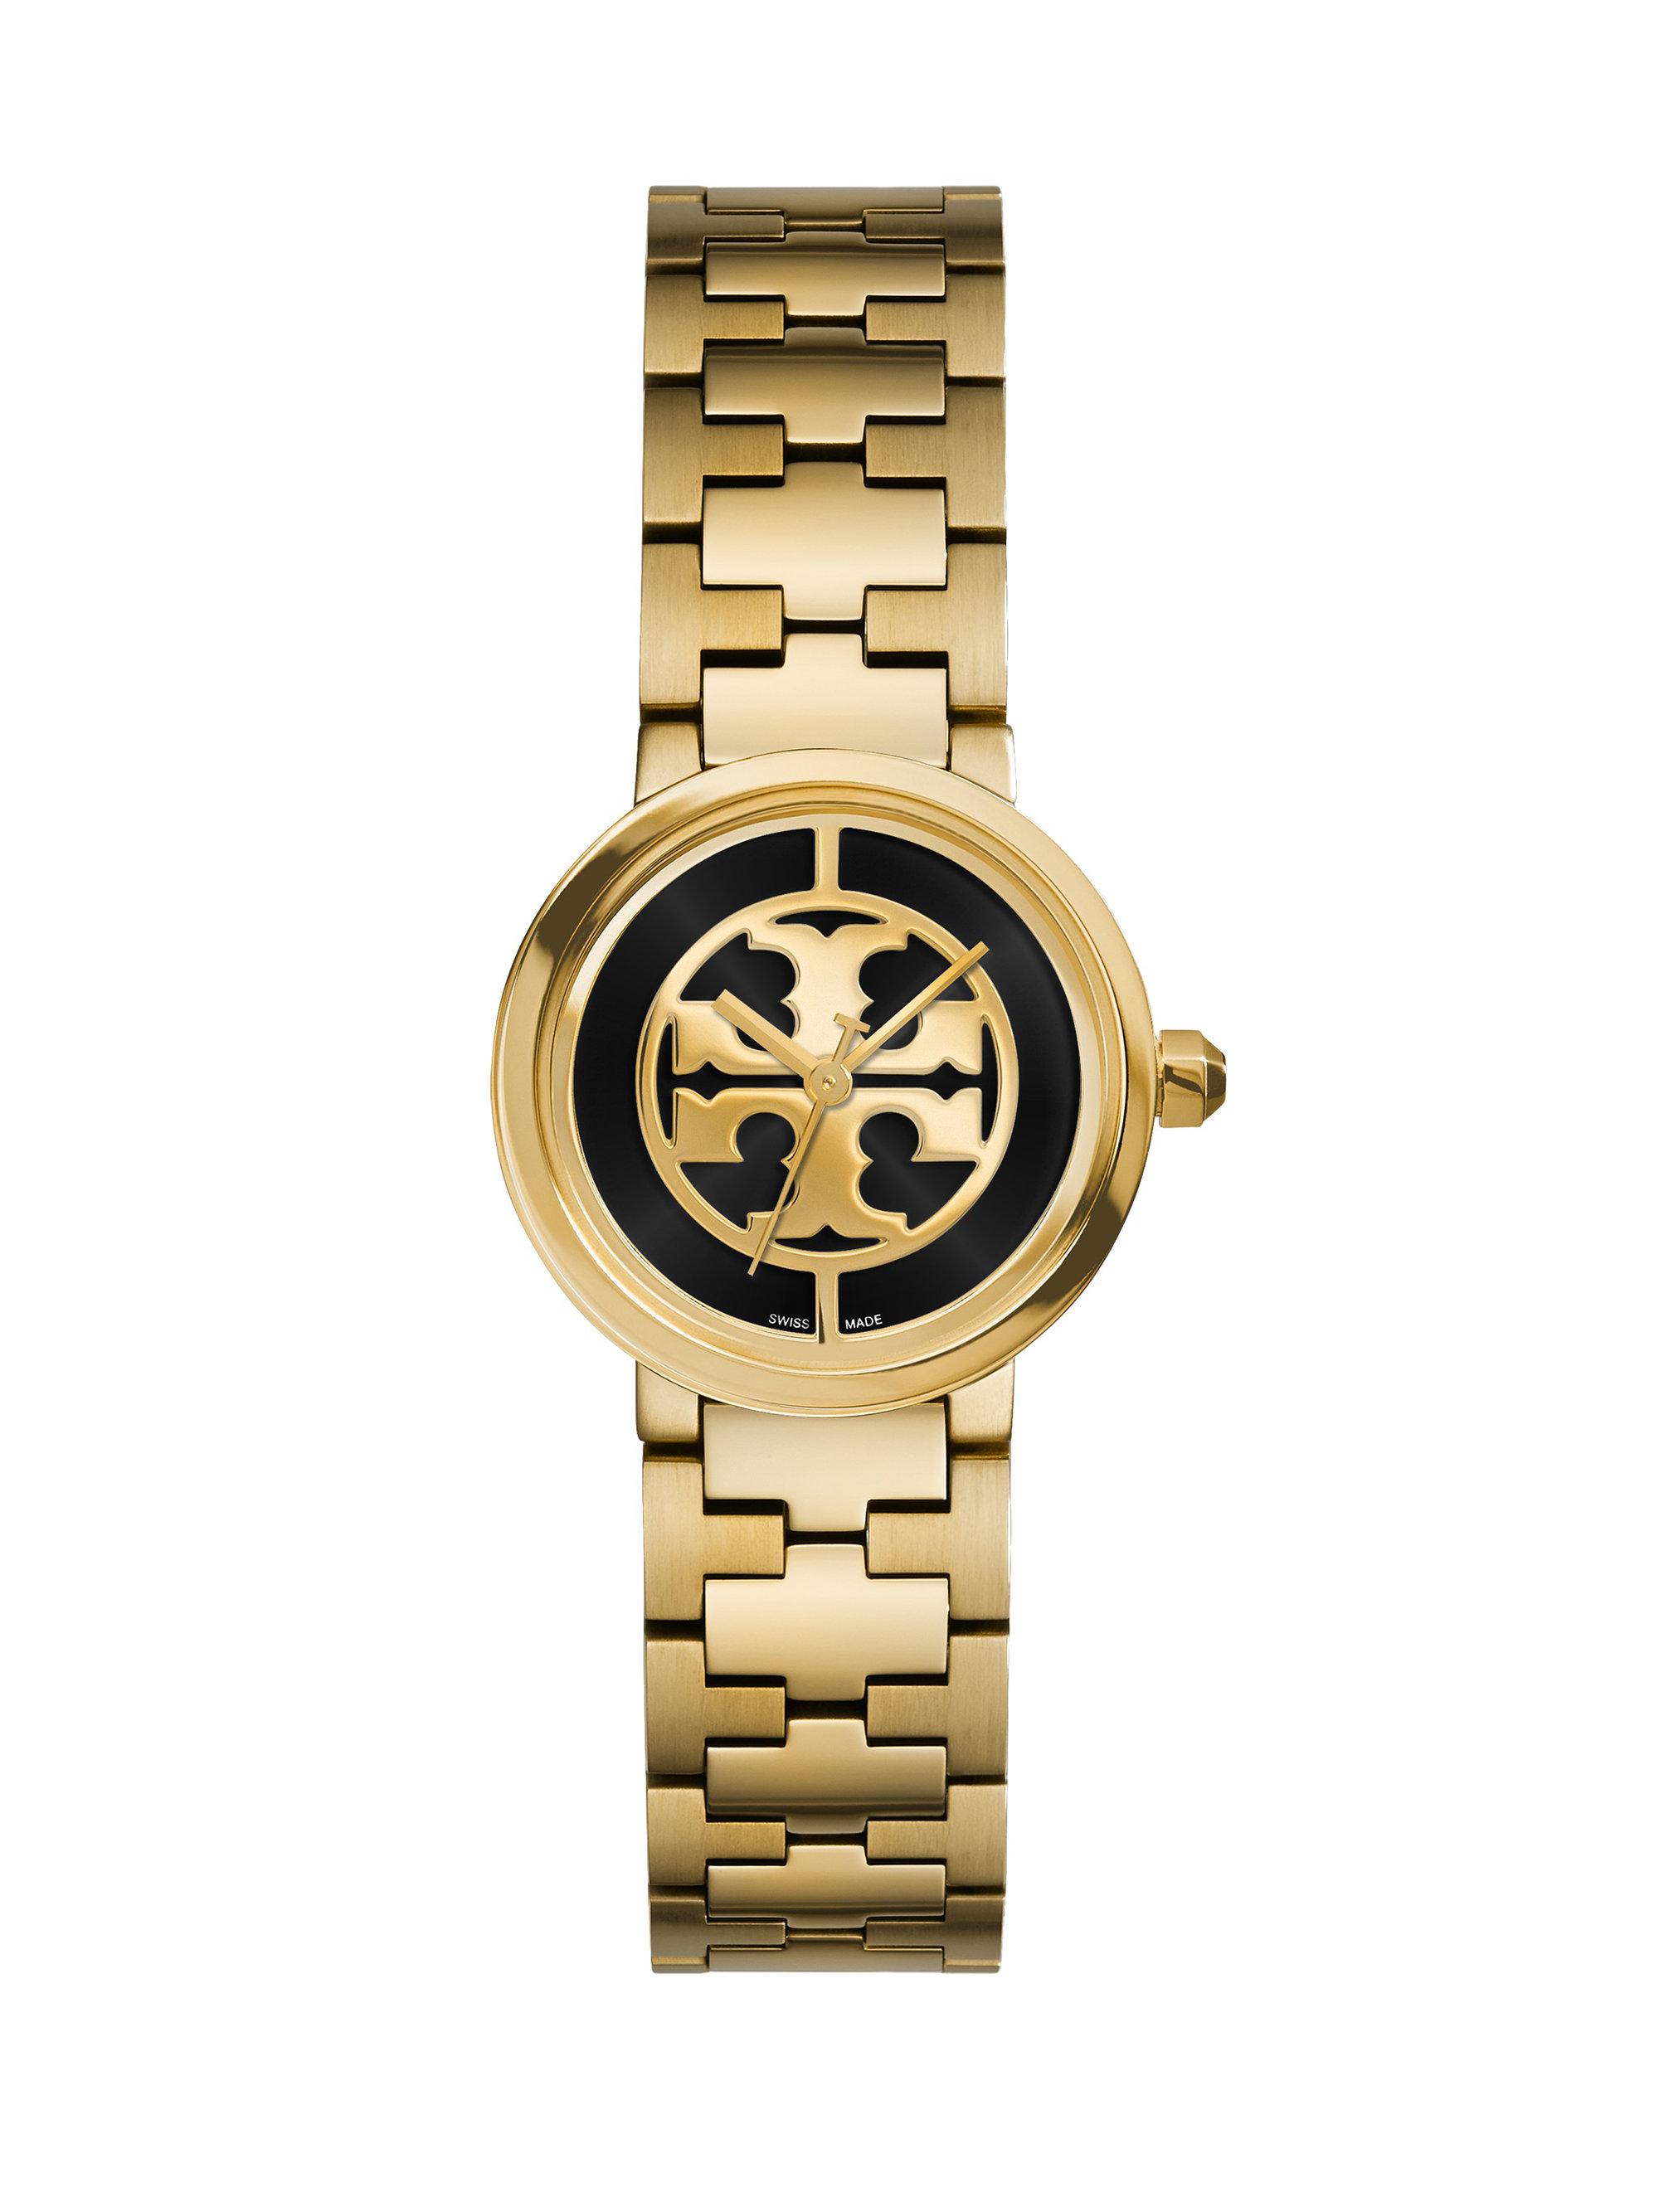 Tory Burch Reva Goldtone Stainless Steel Bracelet Watch